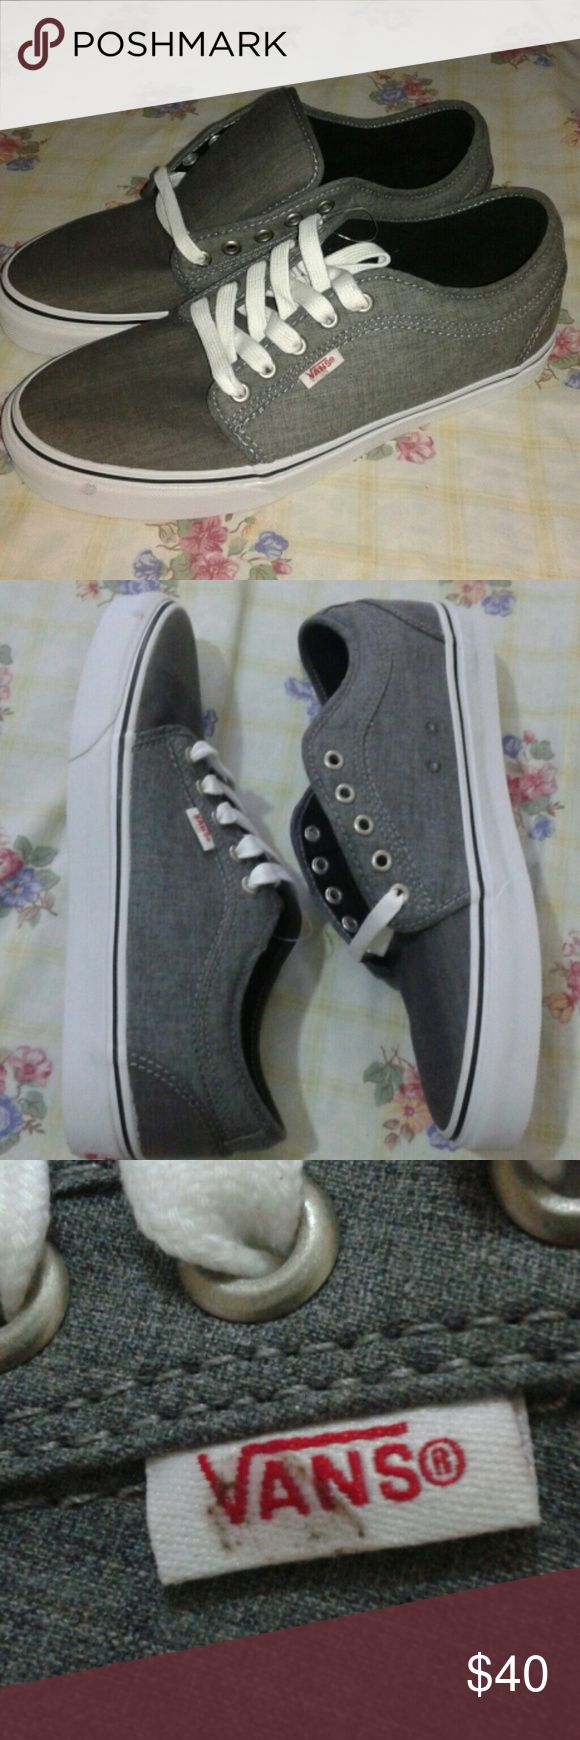 New Vans Pro Chukka Grey Chambray Shoes Sz 8.5 Hi, for sale are a new pair of Vans Chukka shoes in a men's size 8.5 Even though they are new they have two defects which are pictured. Vans Shoes